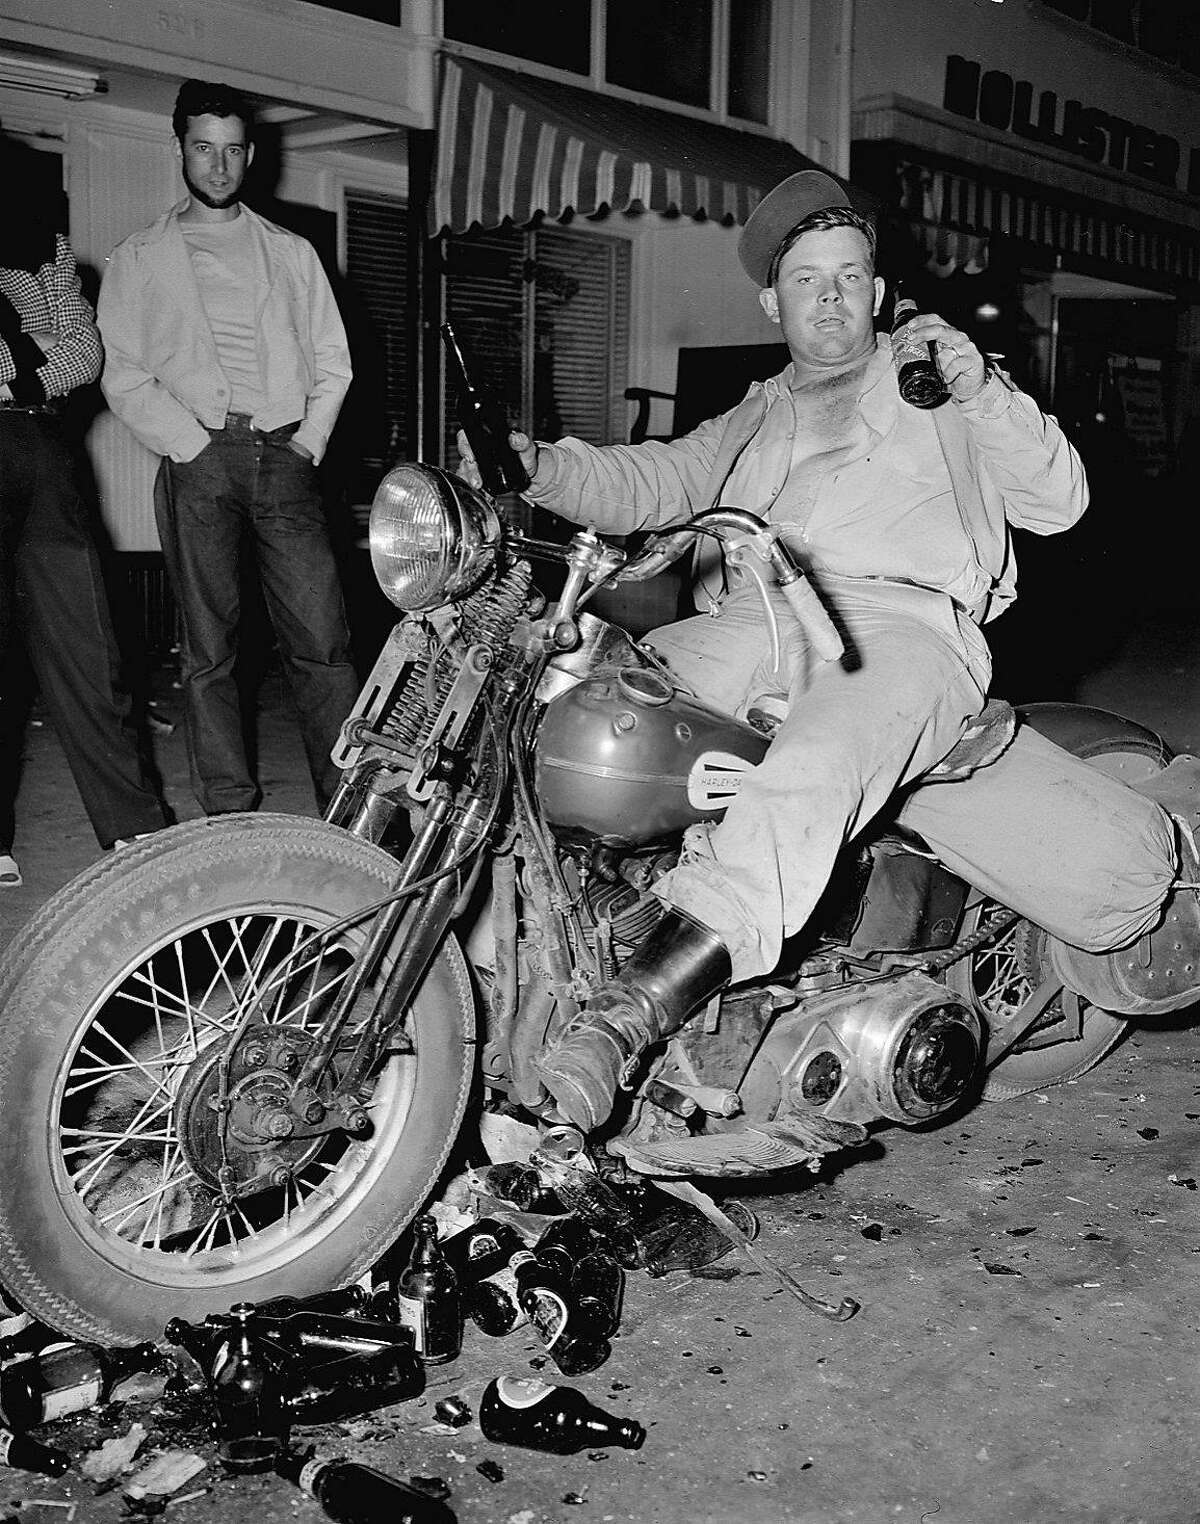 MOTORCYCLES IN HOLLISTER - EDDIE DAVENPORT, OF TULARE, CA, DRINKS A BEER ON HIS MOTORCYCLE IN HOLLISTER, CA. DURING THE DISRUPTION OF JULY 7, 1947. August Deserpa, left, watches from the background. Photo by Barney Peterson, SF Chronicle Over the years, confusion of the name of the biker has been reported as Eddie Davenport or Don Middleton.